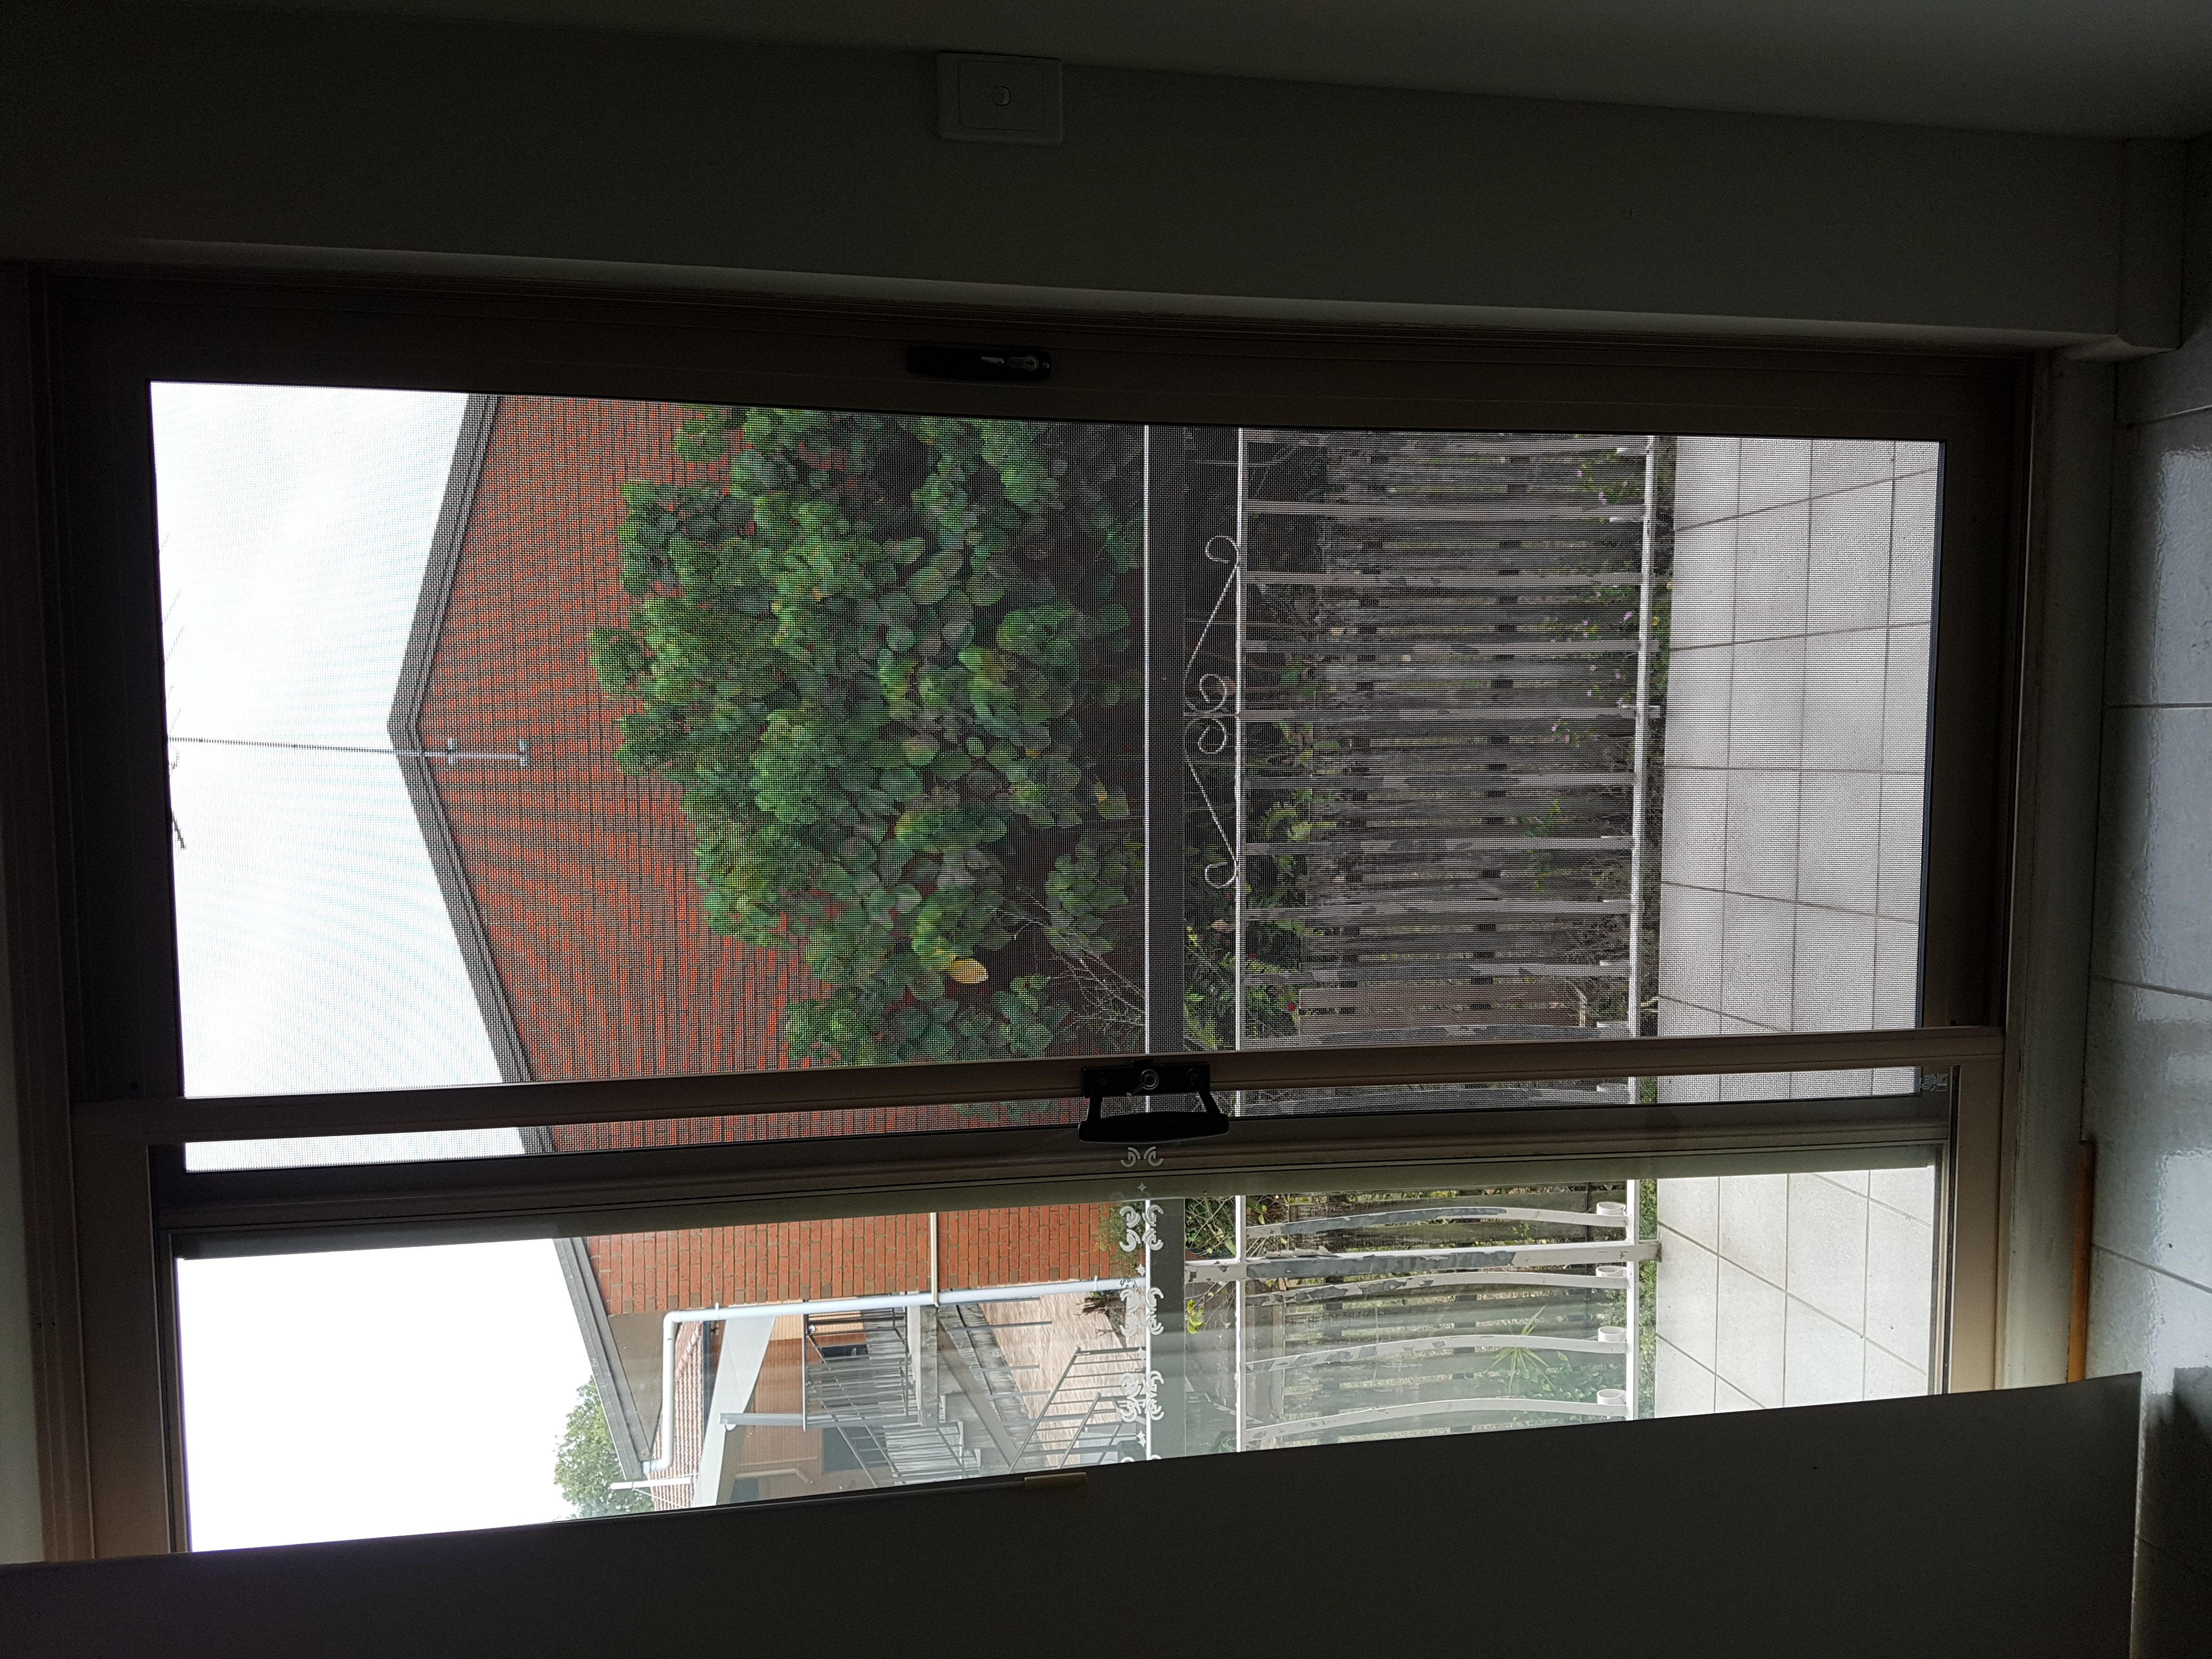 View through Panther Protect security door stainless steel mesh